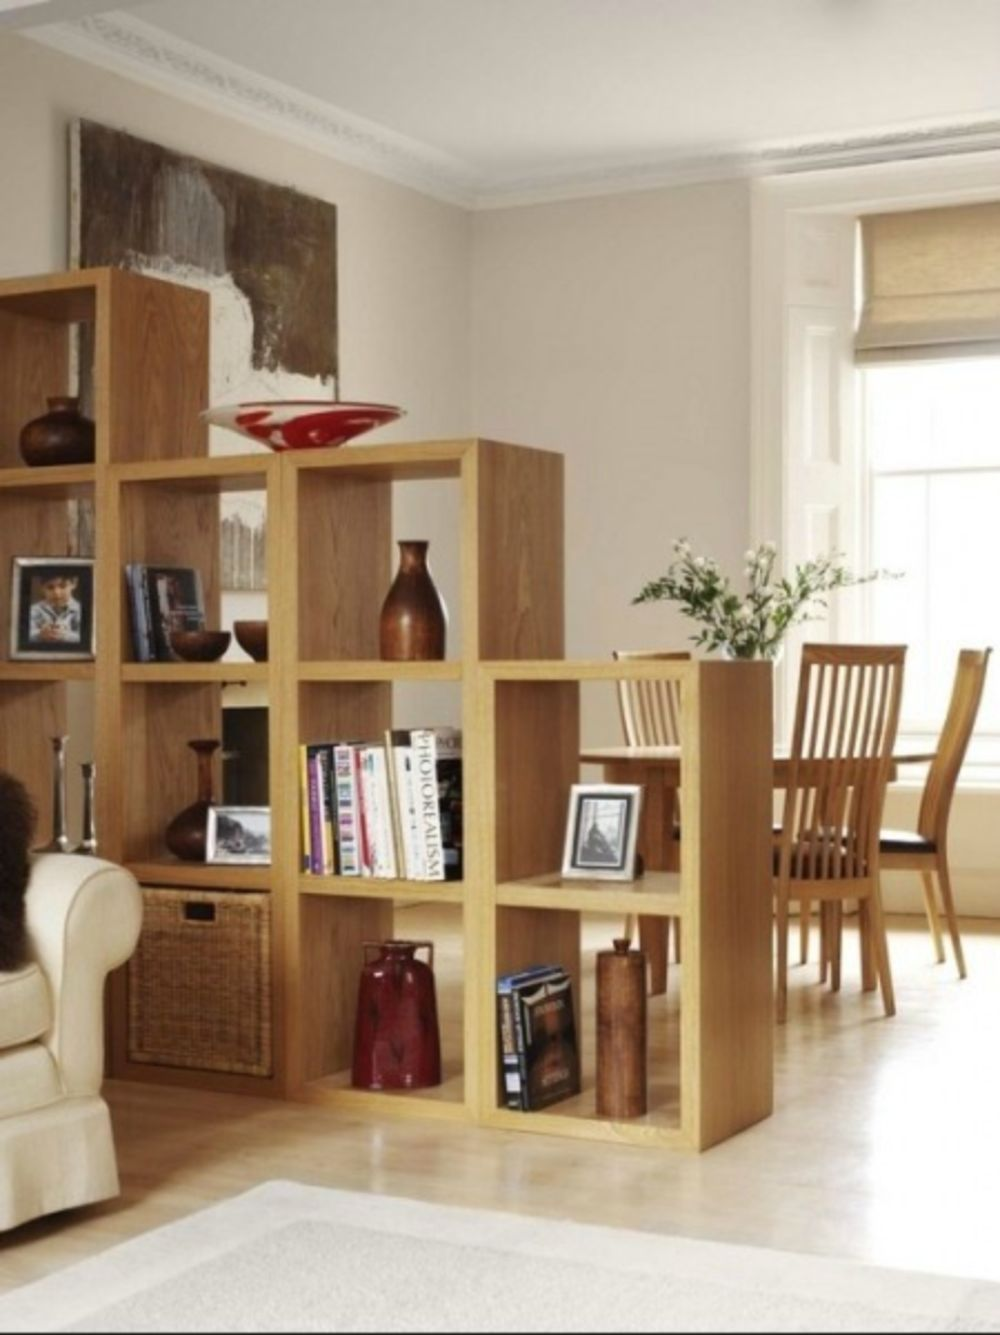 Cool simple and functional room divider ideas homedecort